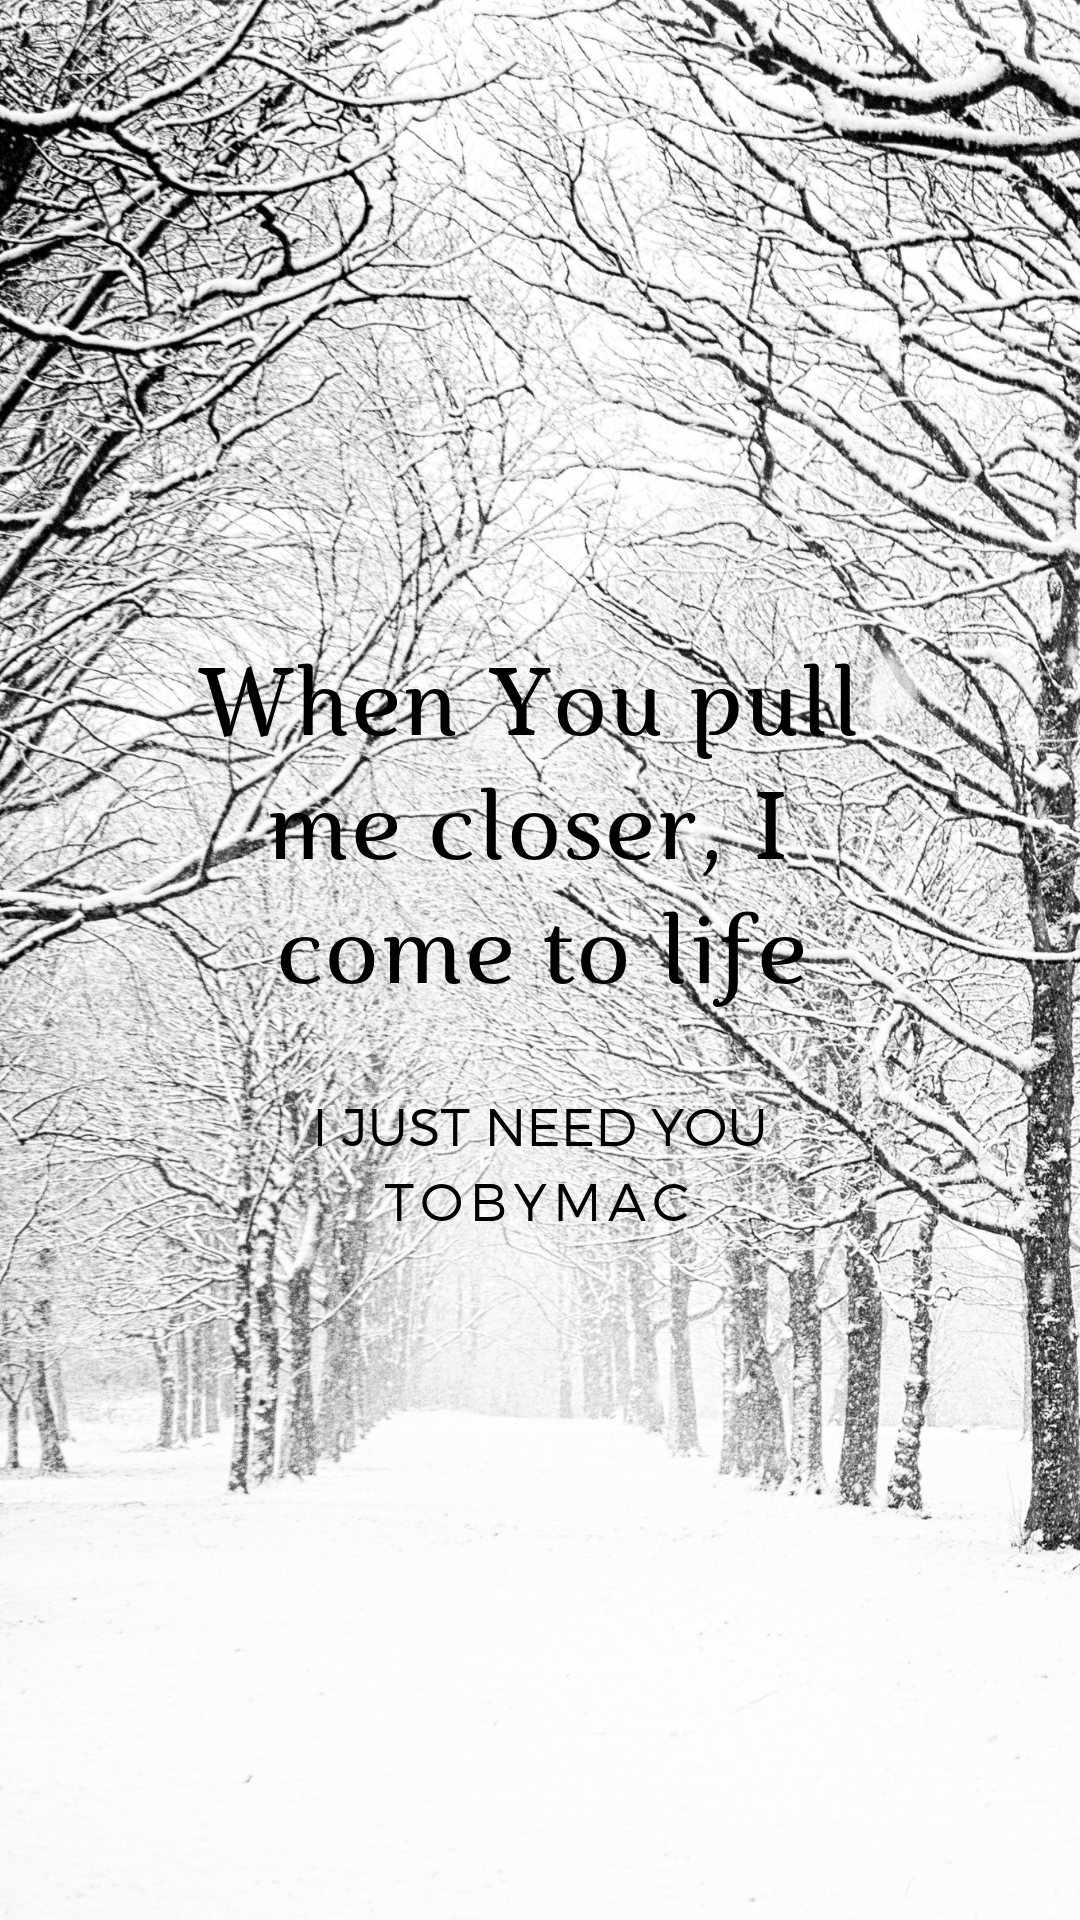 I Just Need You Tobymac Tobymac Speak Life Me Too Lyrics I Just Need You